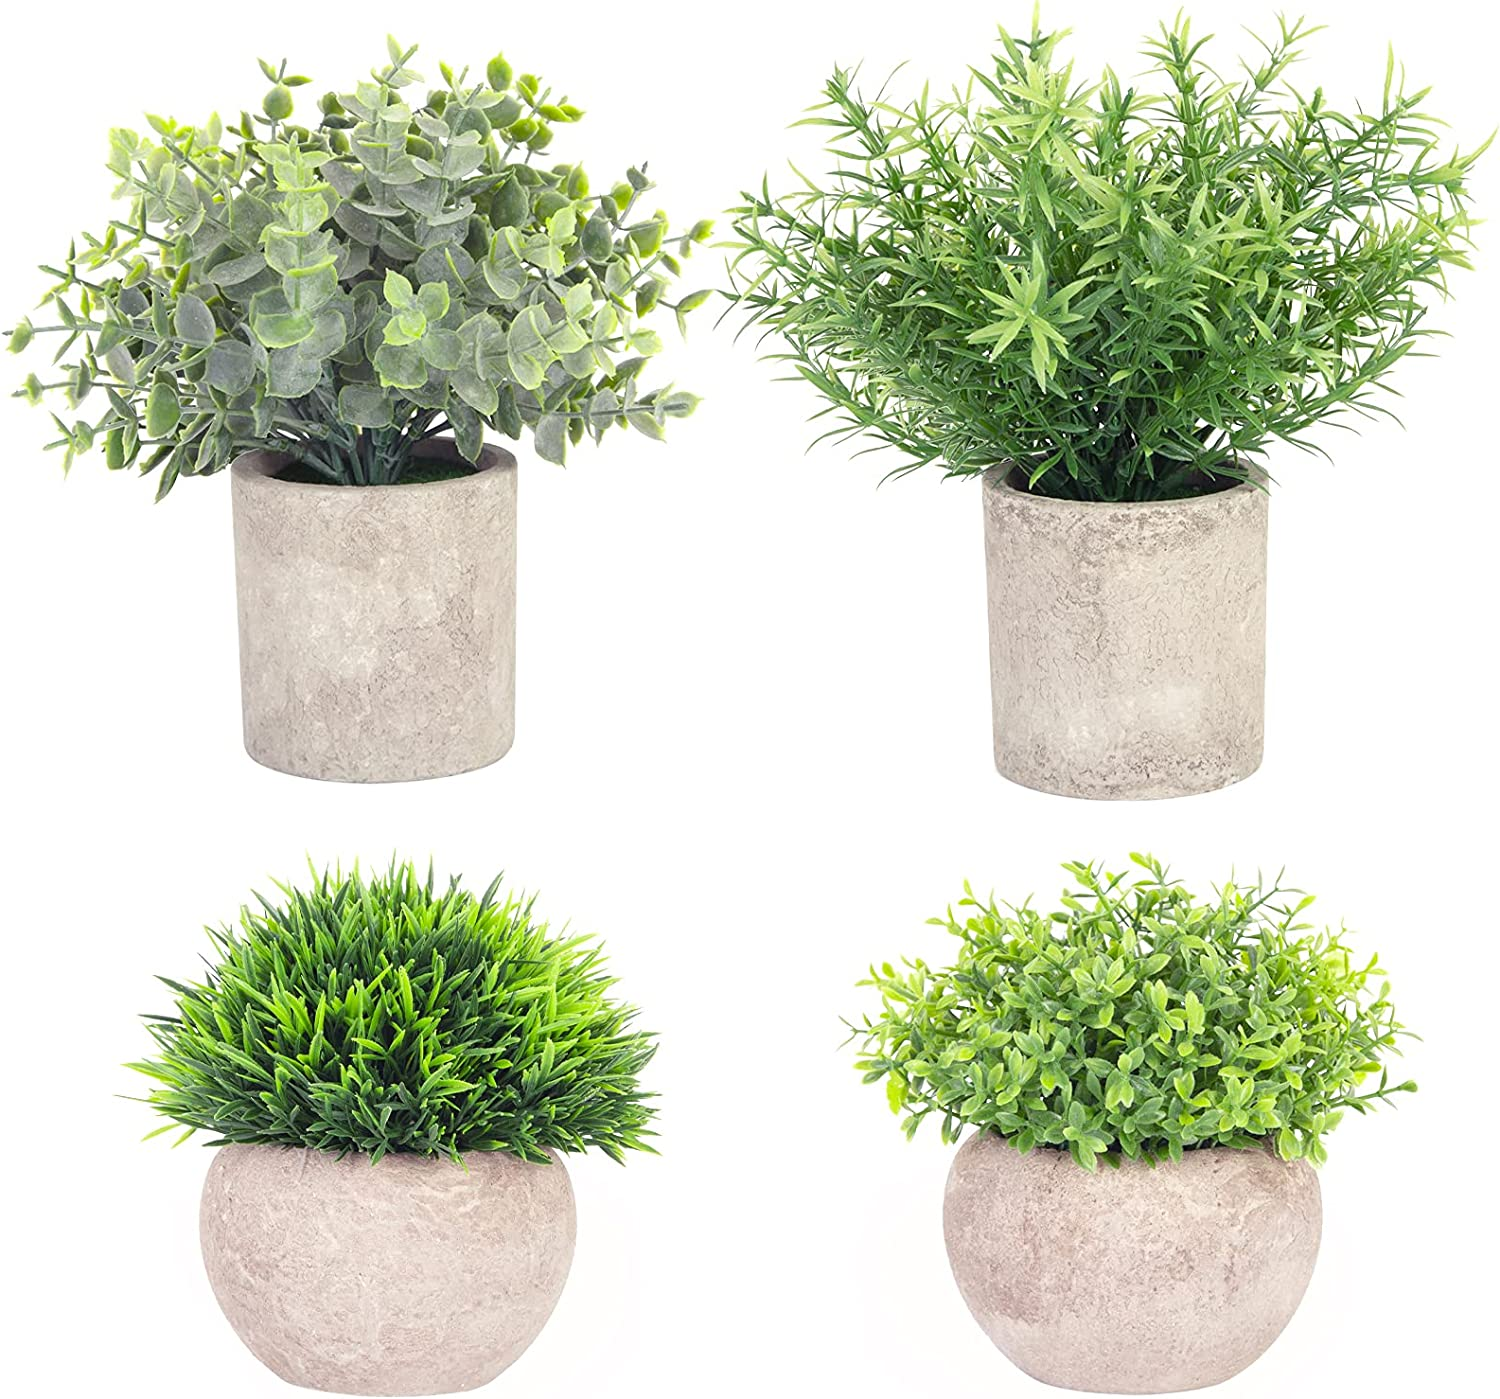 Helsens 4 Pack Artificial Mini Potted Plants Fake Small Greenery Eucalyptus Plants in Pots for Home Office Desk Table Indoor Decor